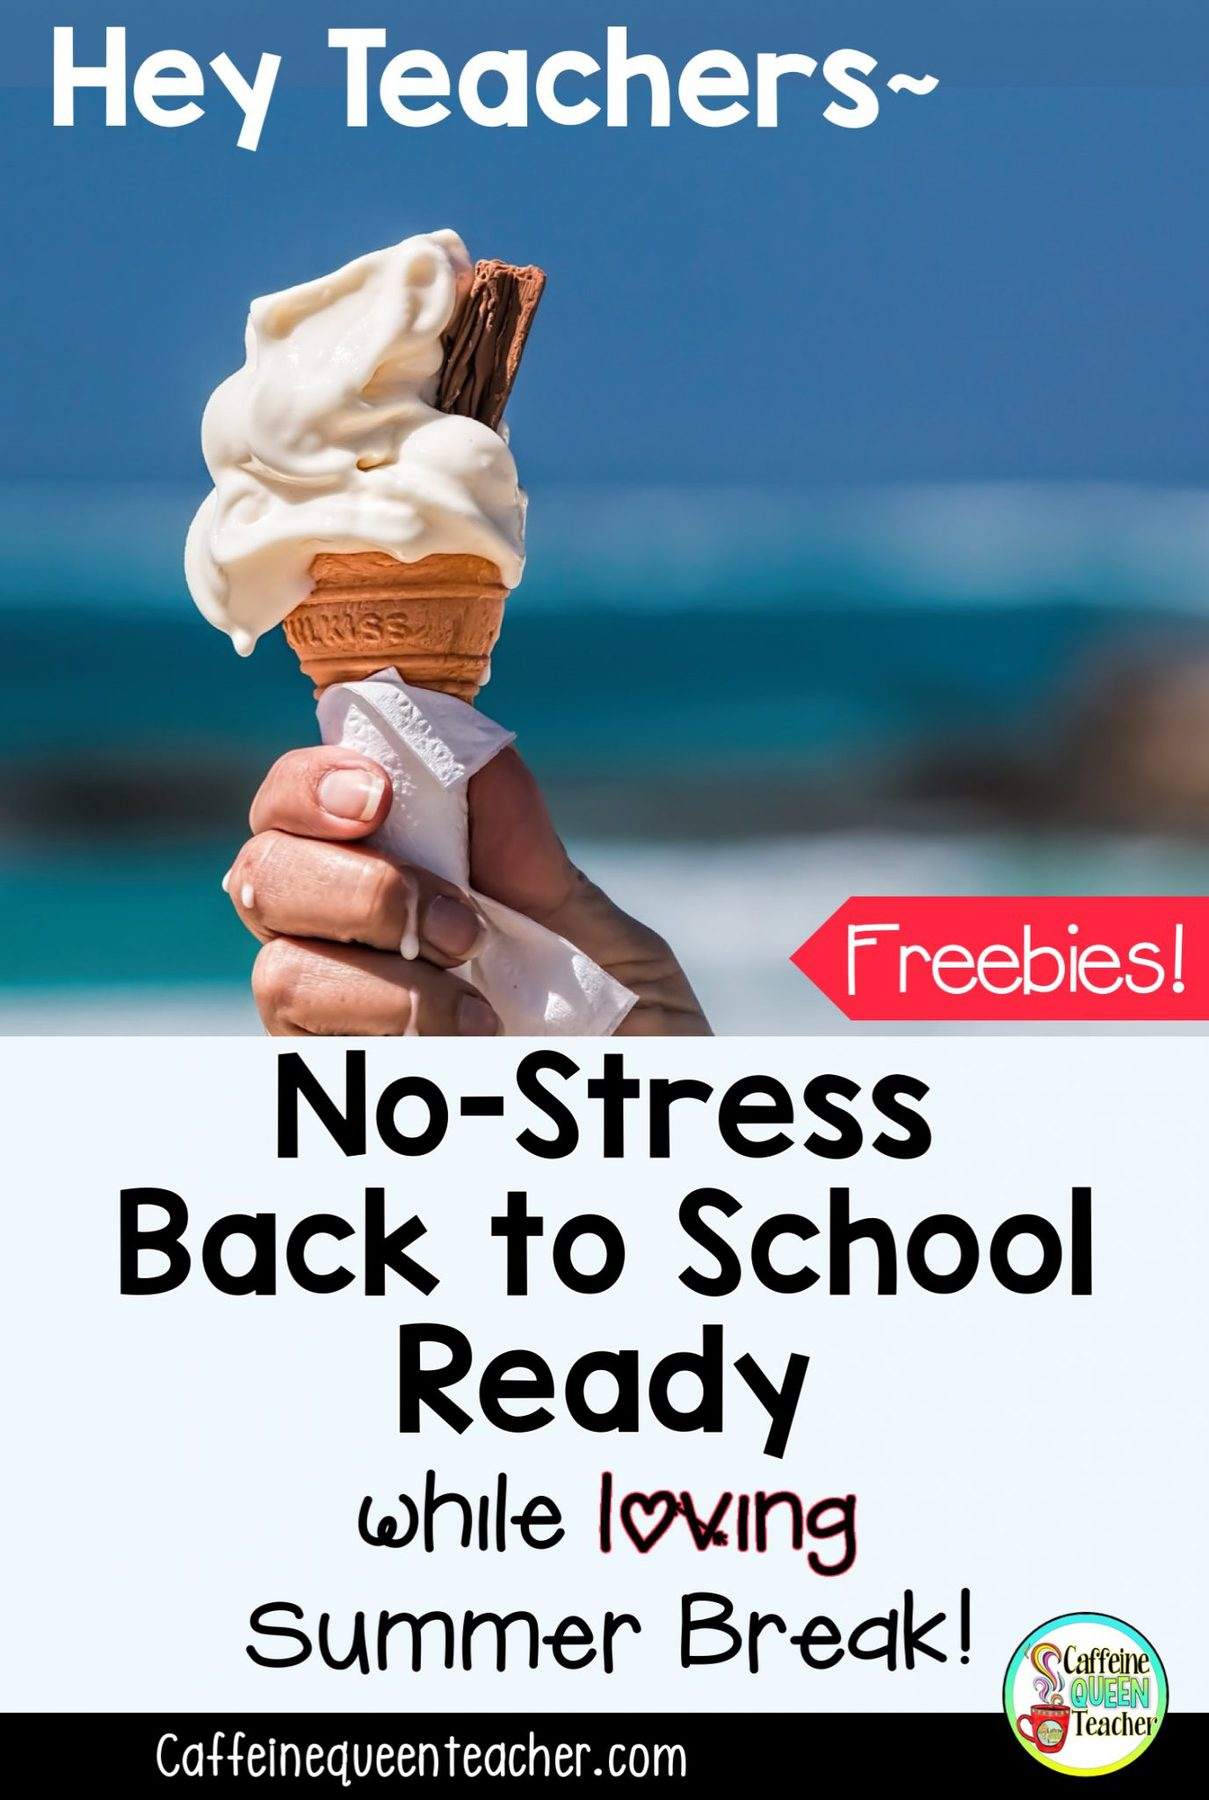 No Stress Back to School Planning for Teachers on Summer Break!